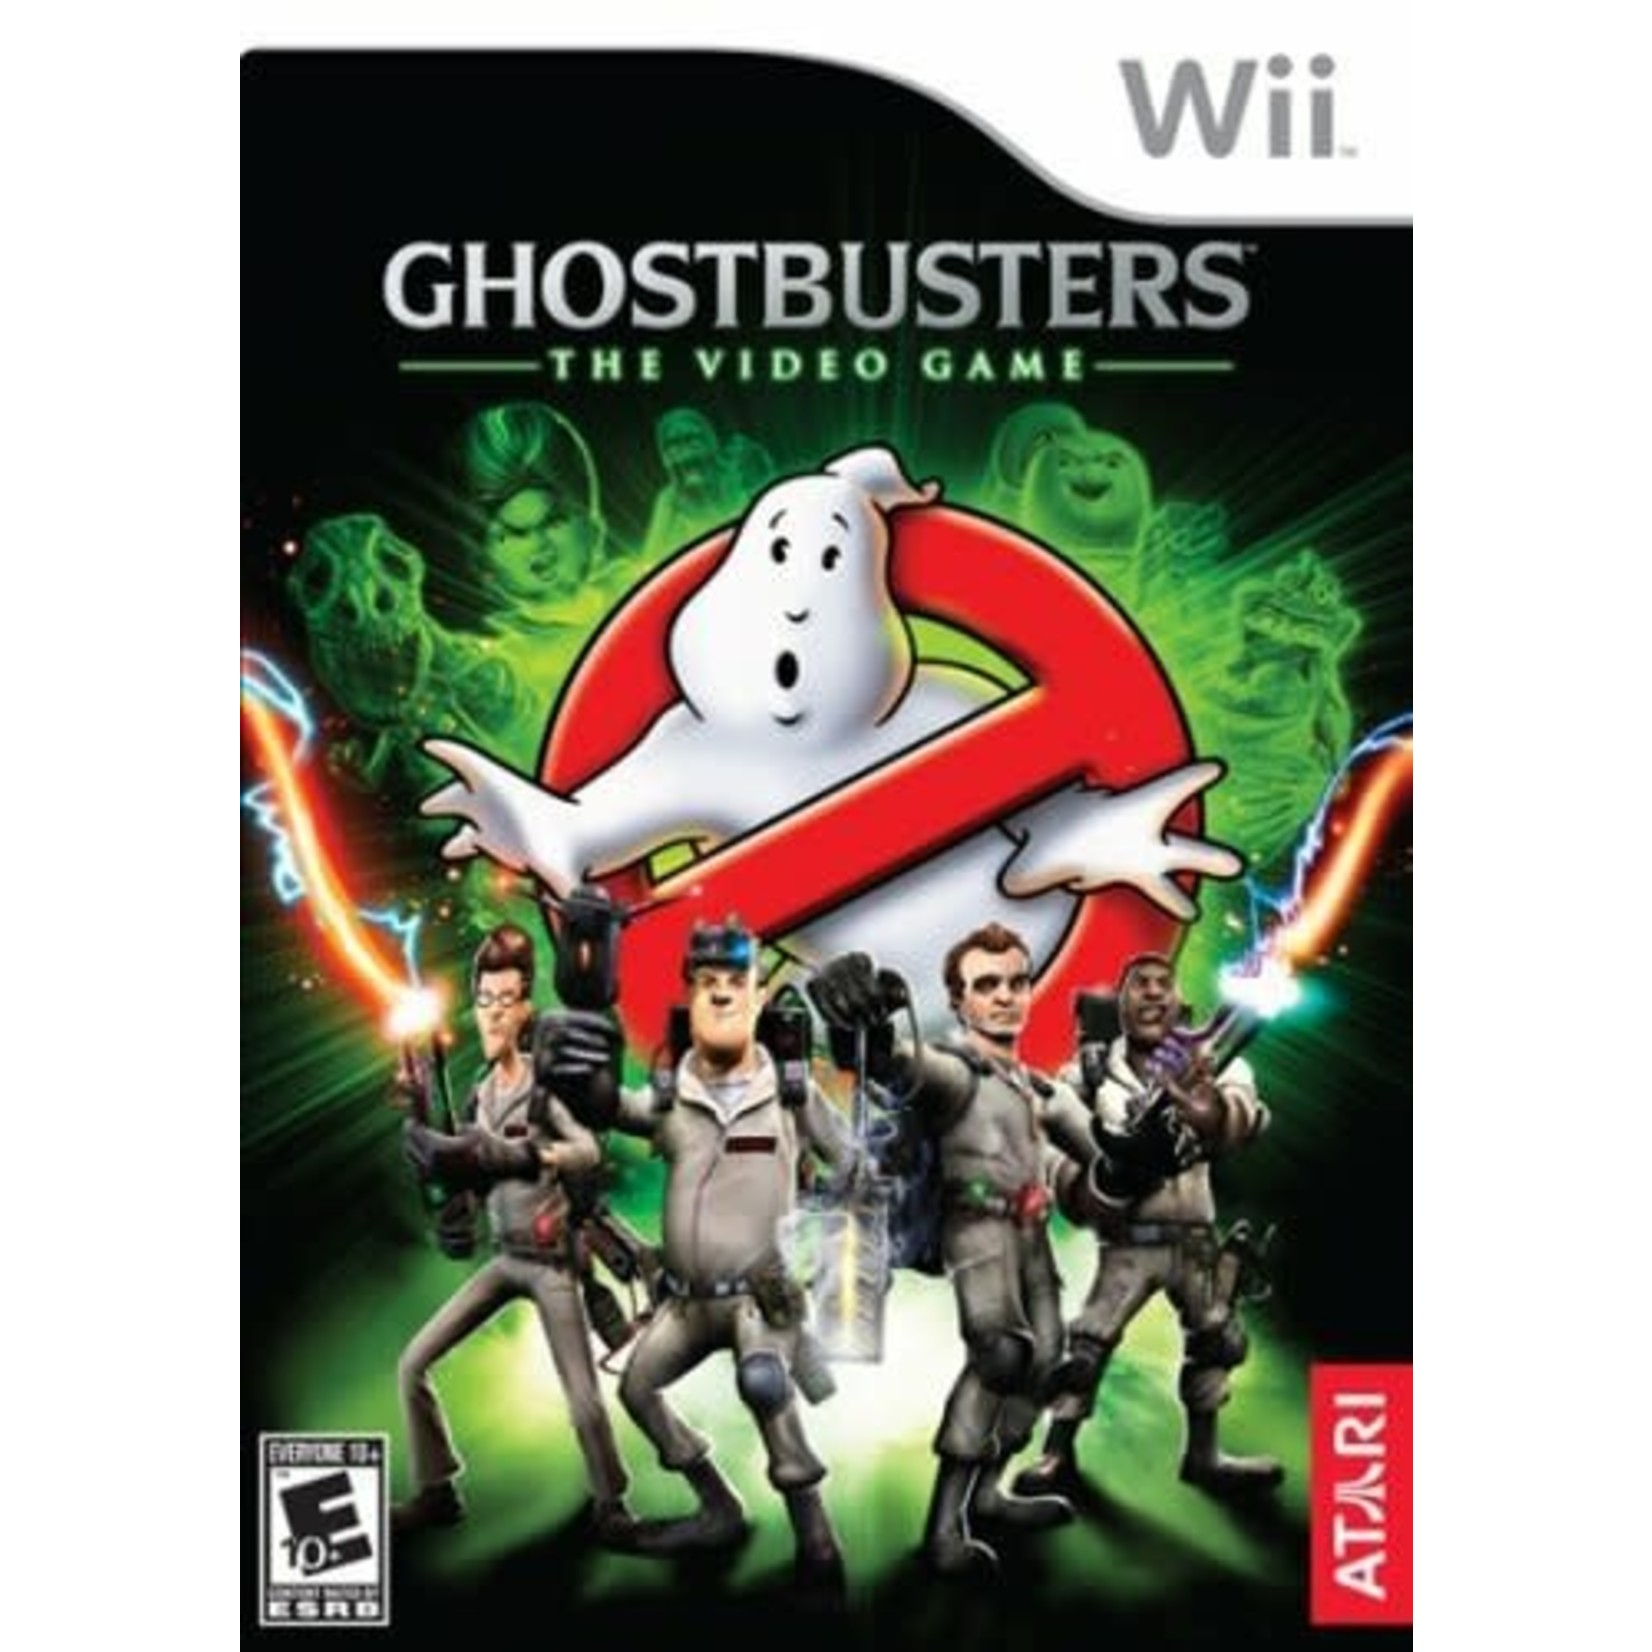 WIIUSD-Ghostbusters: The Video Game